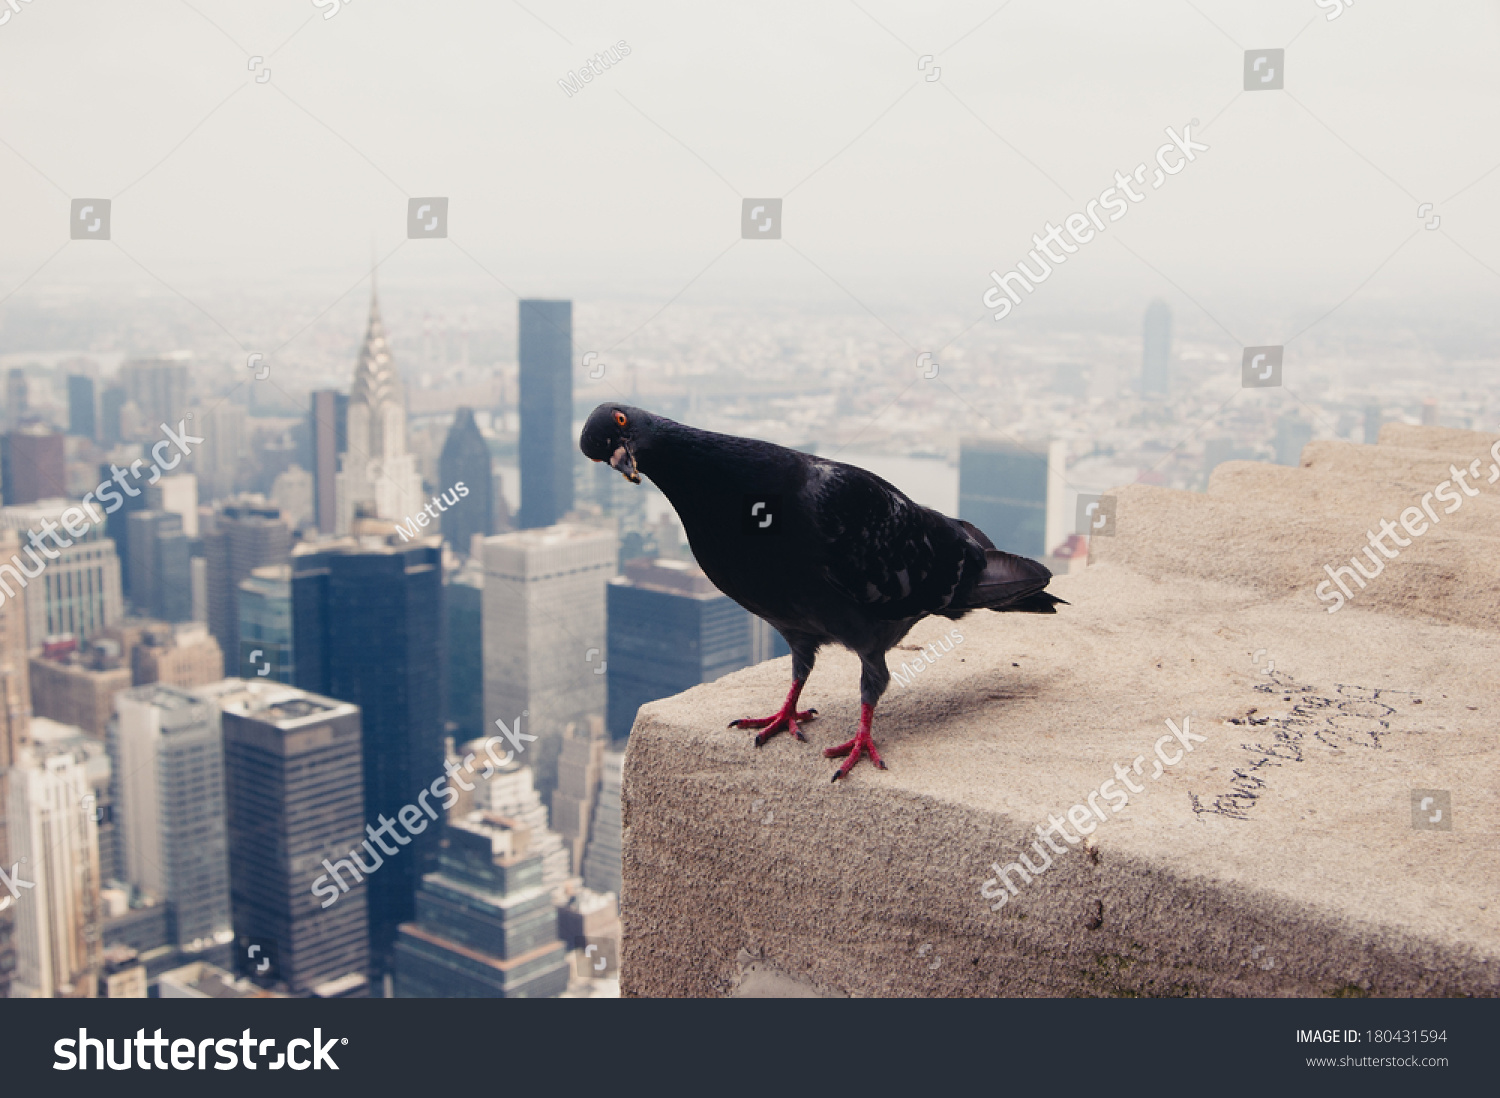 Dove on the roof in New York. New York Downtown skyline and lonely pigeon on the roof looking at camera. A lot of space for text. Copy space.